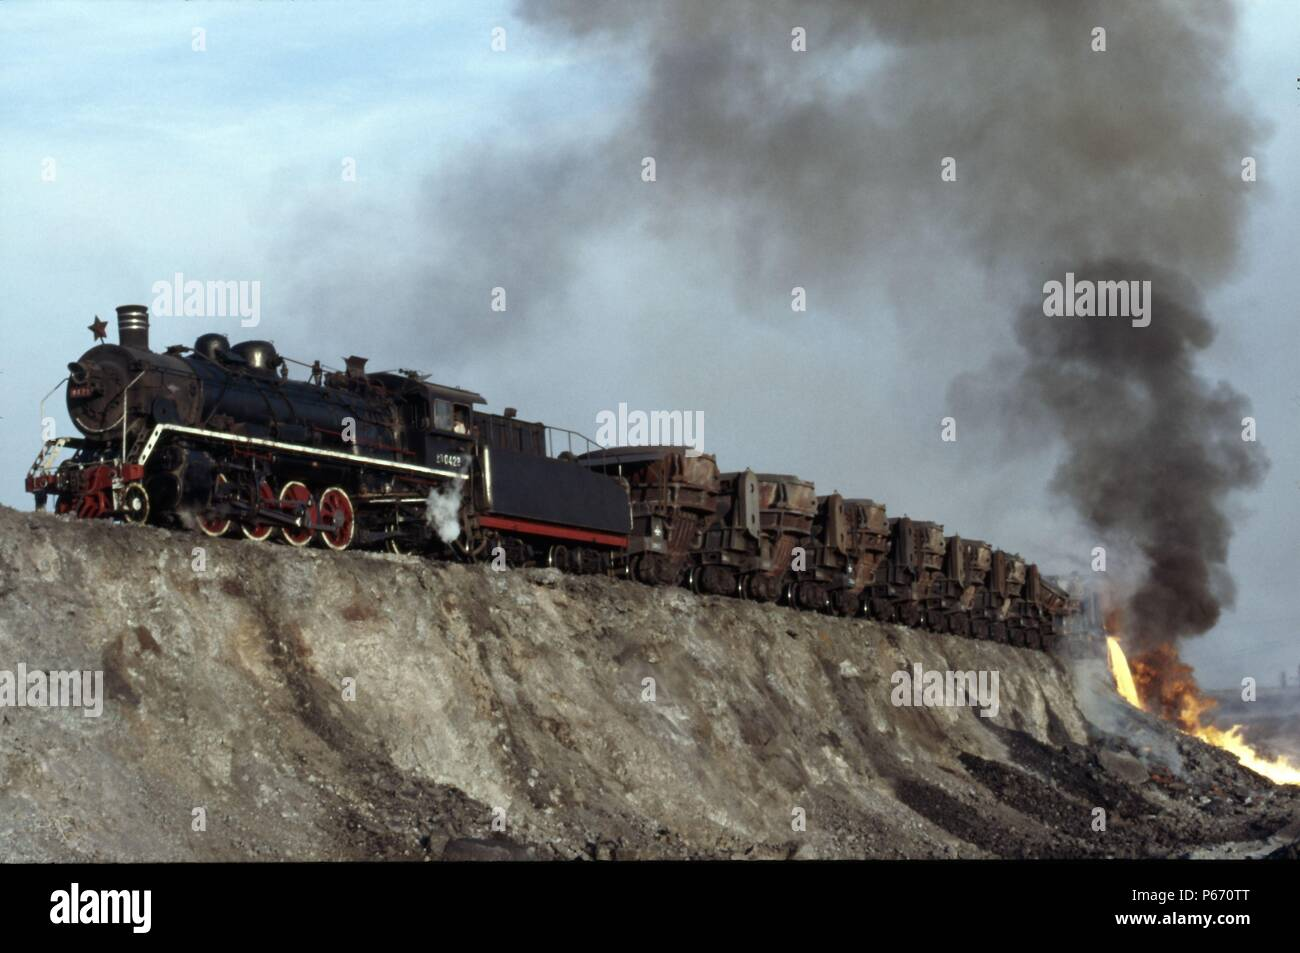 Molten Tipping Stock Photos & Molten Tipping Stock Images - Alamy